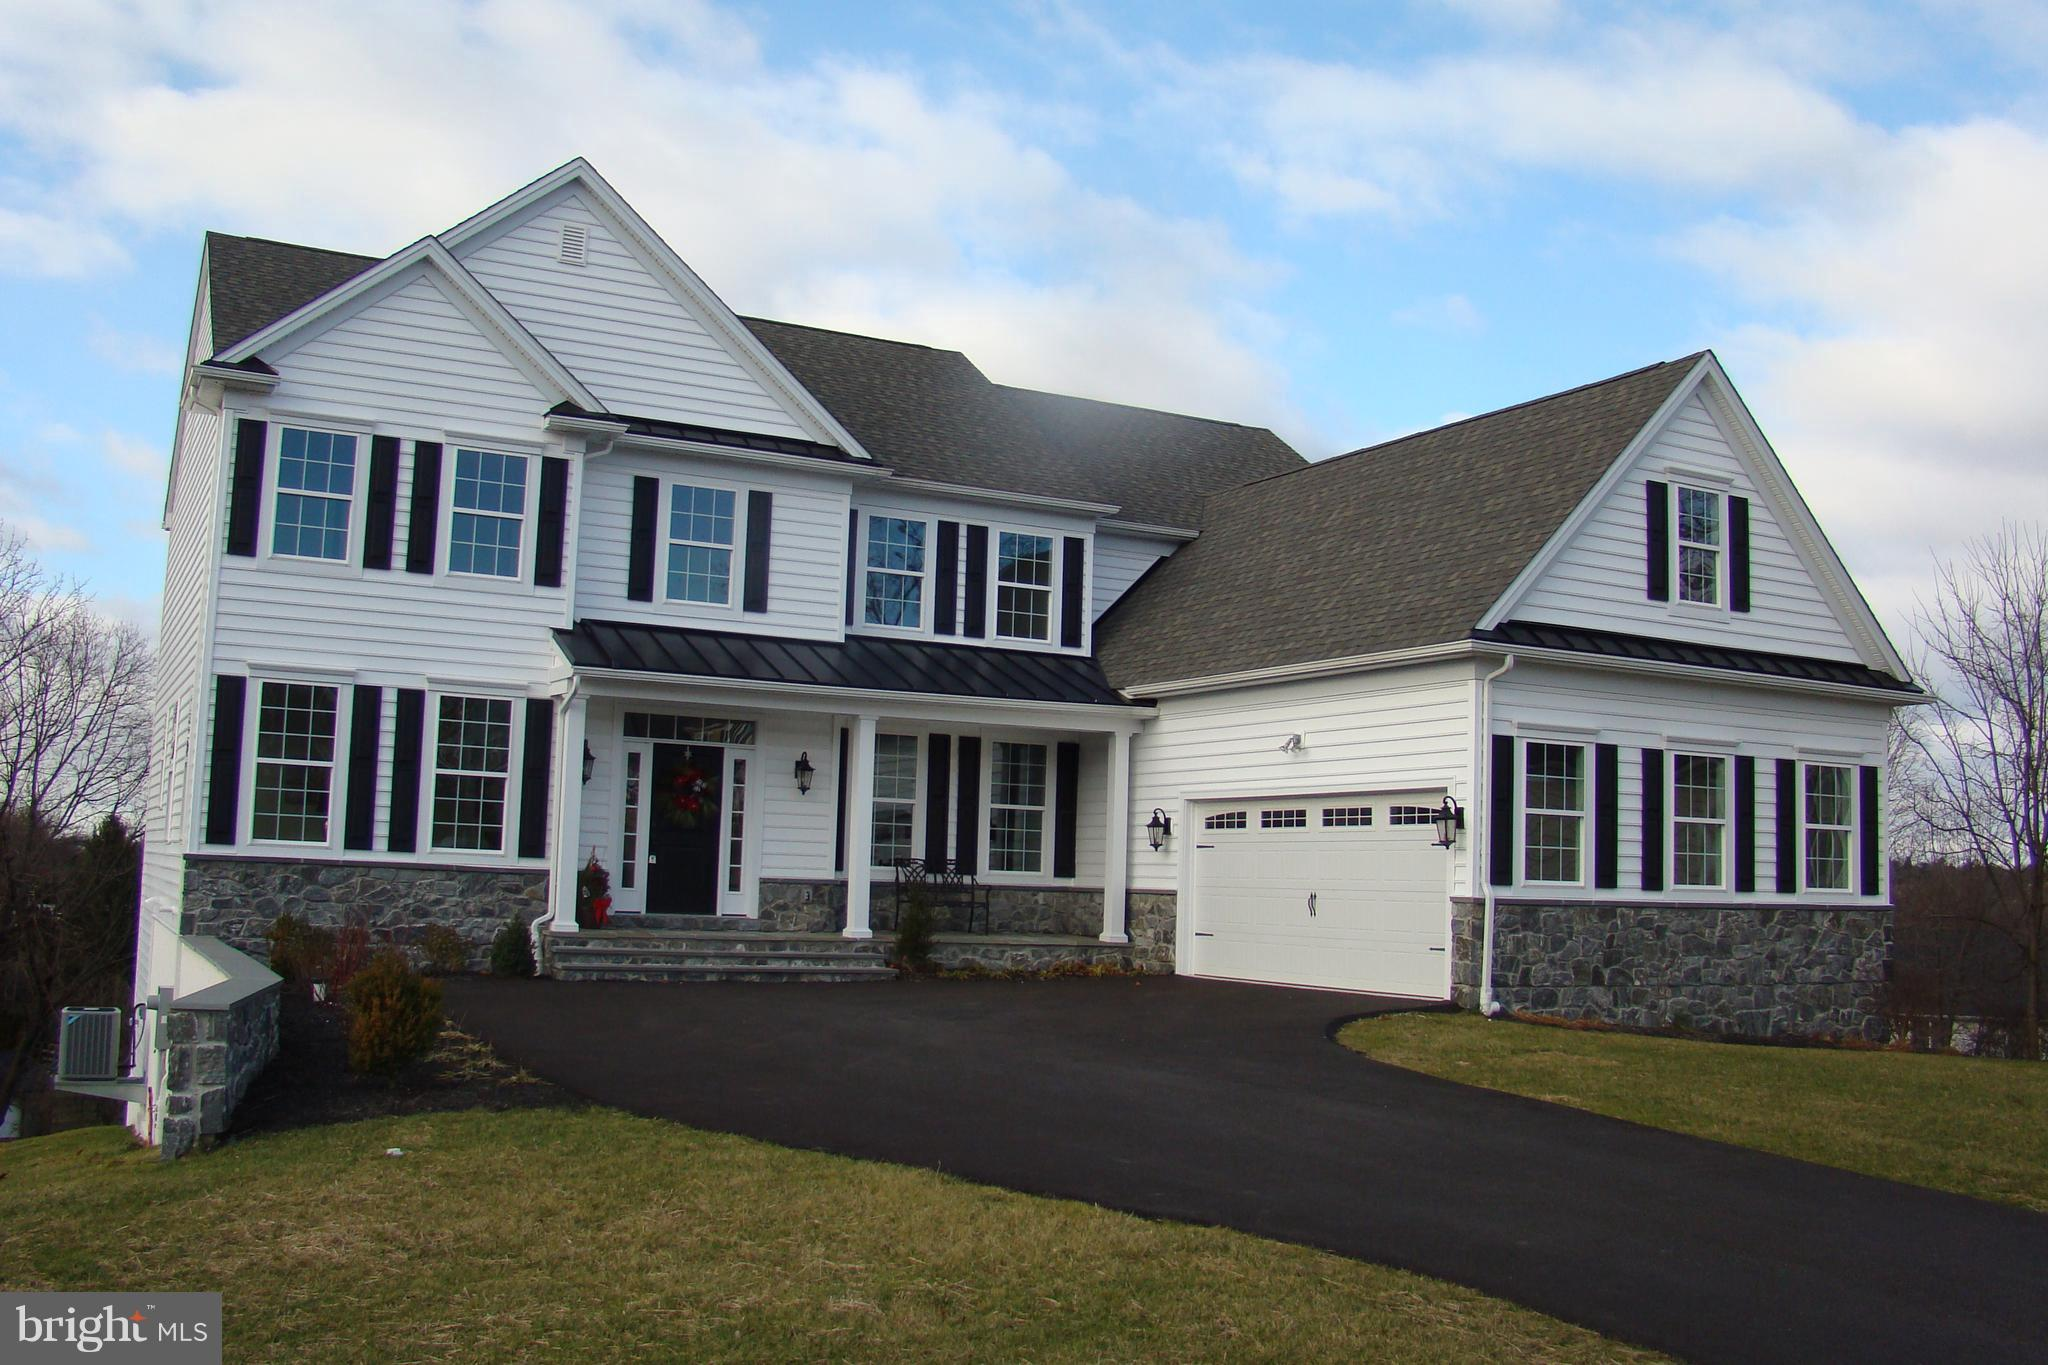 26 GALLOP LANE, WEST CHESTER, PA 19380